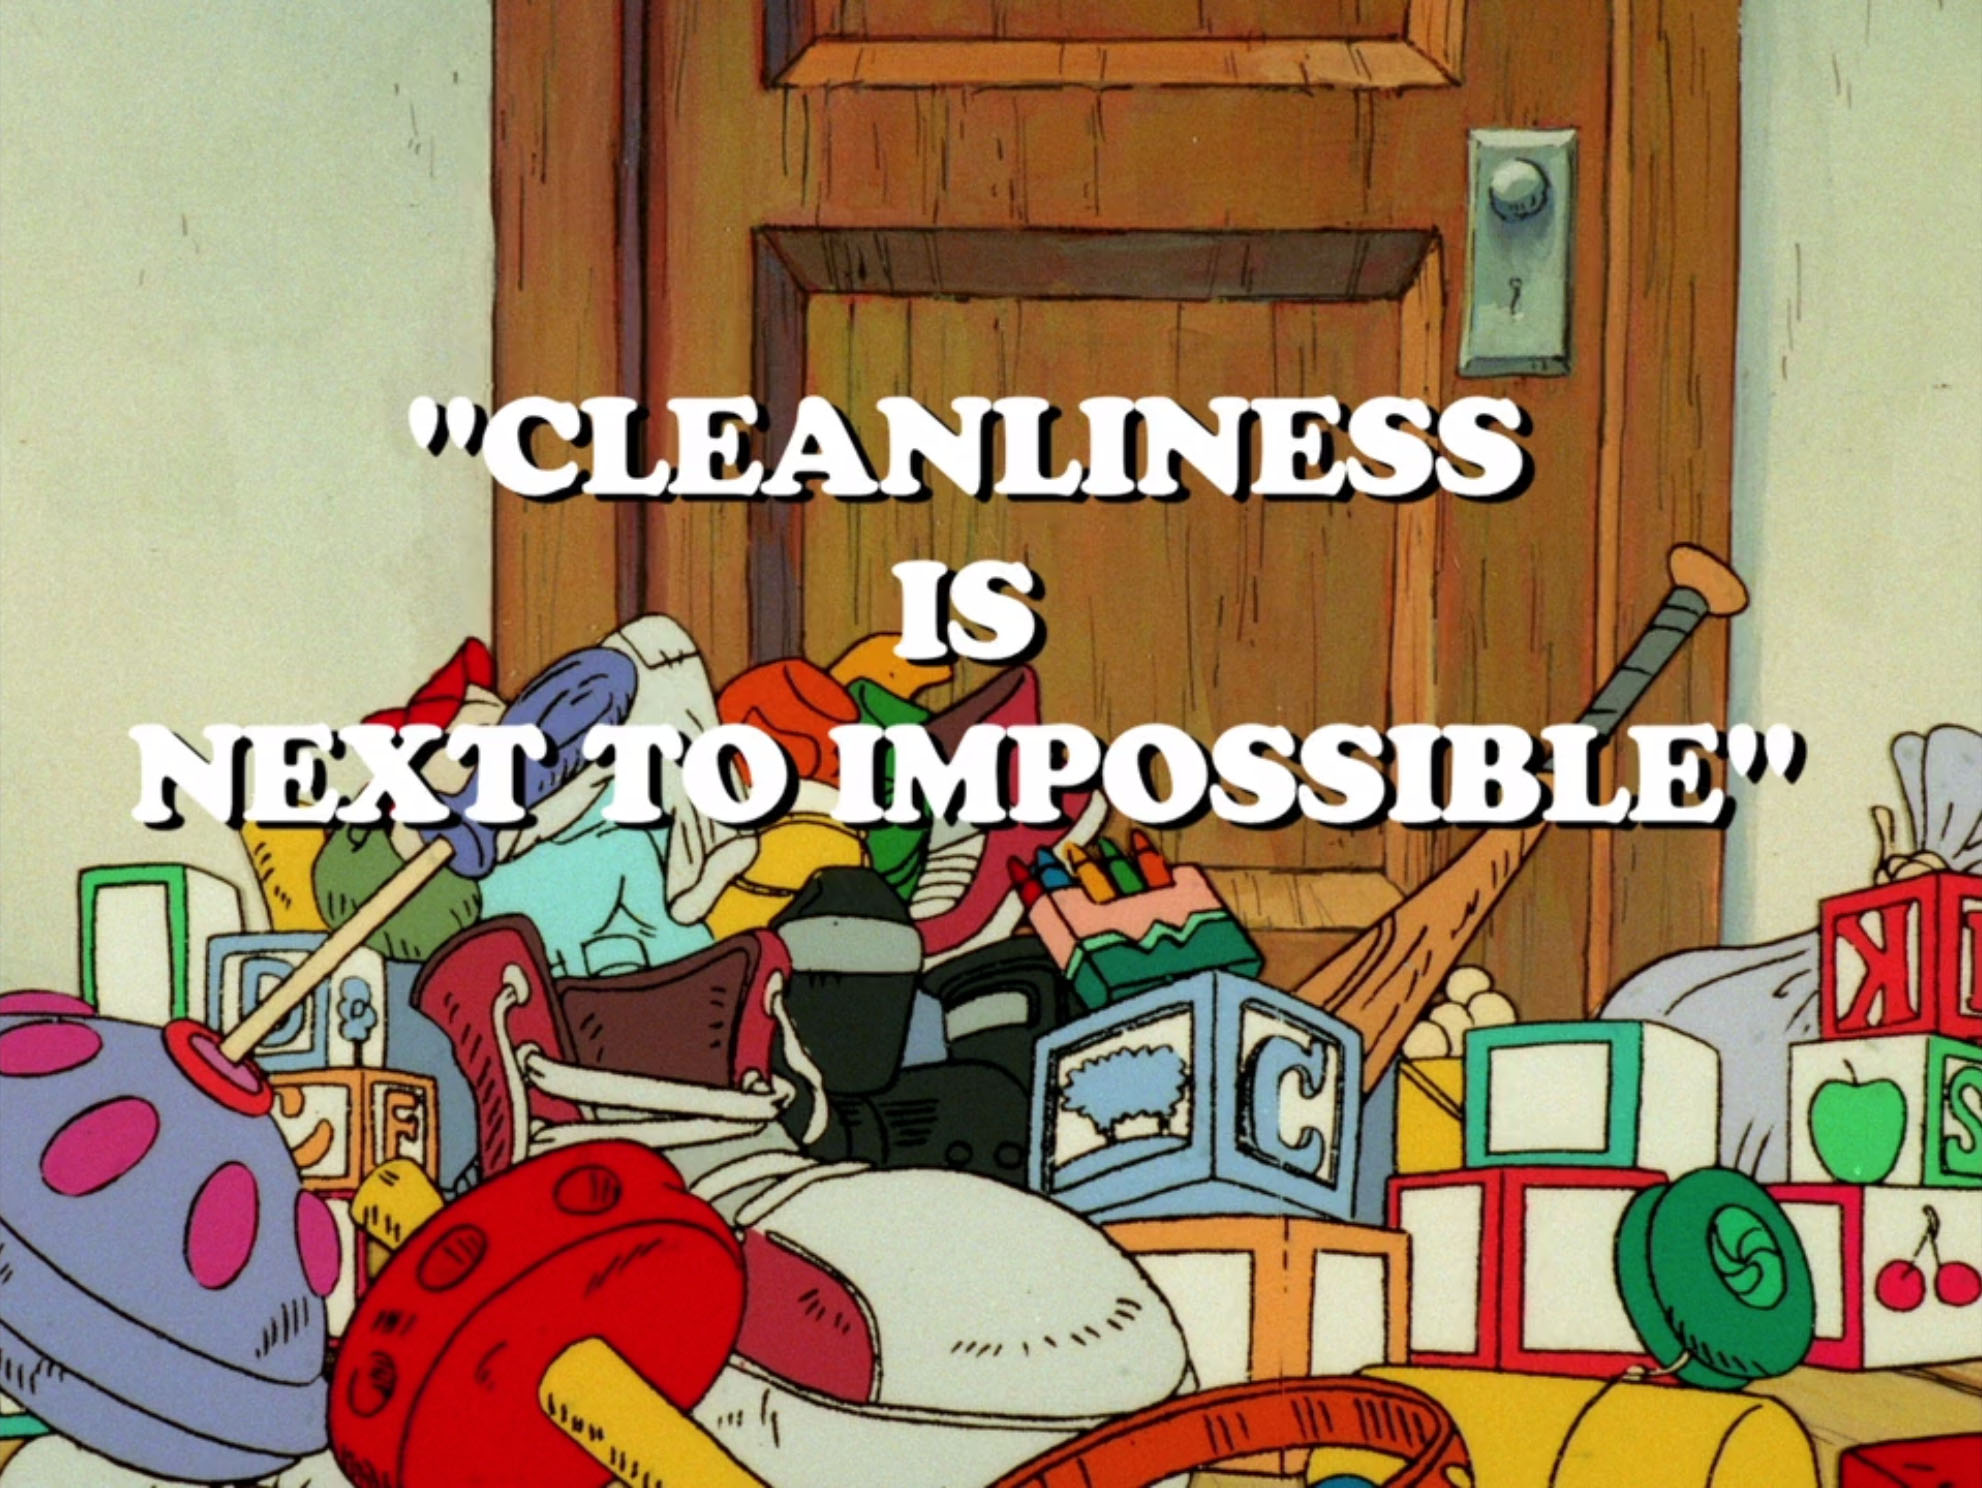 Cleanliness is next to goldenness